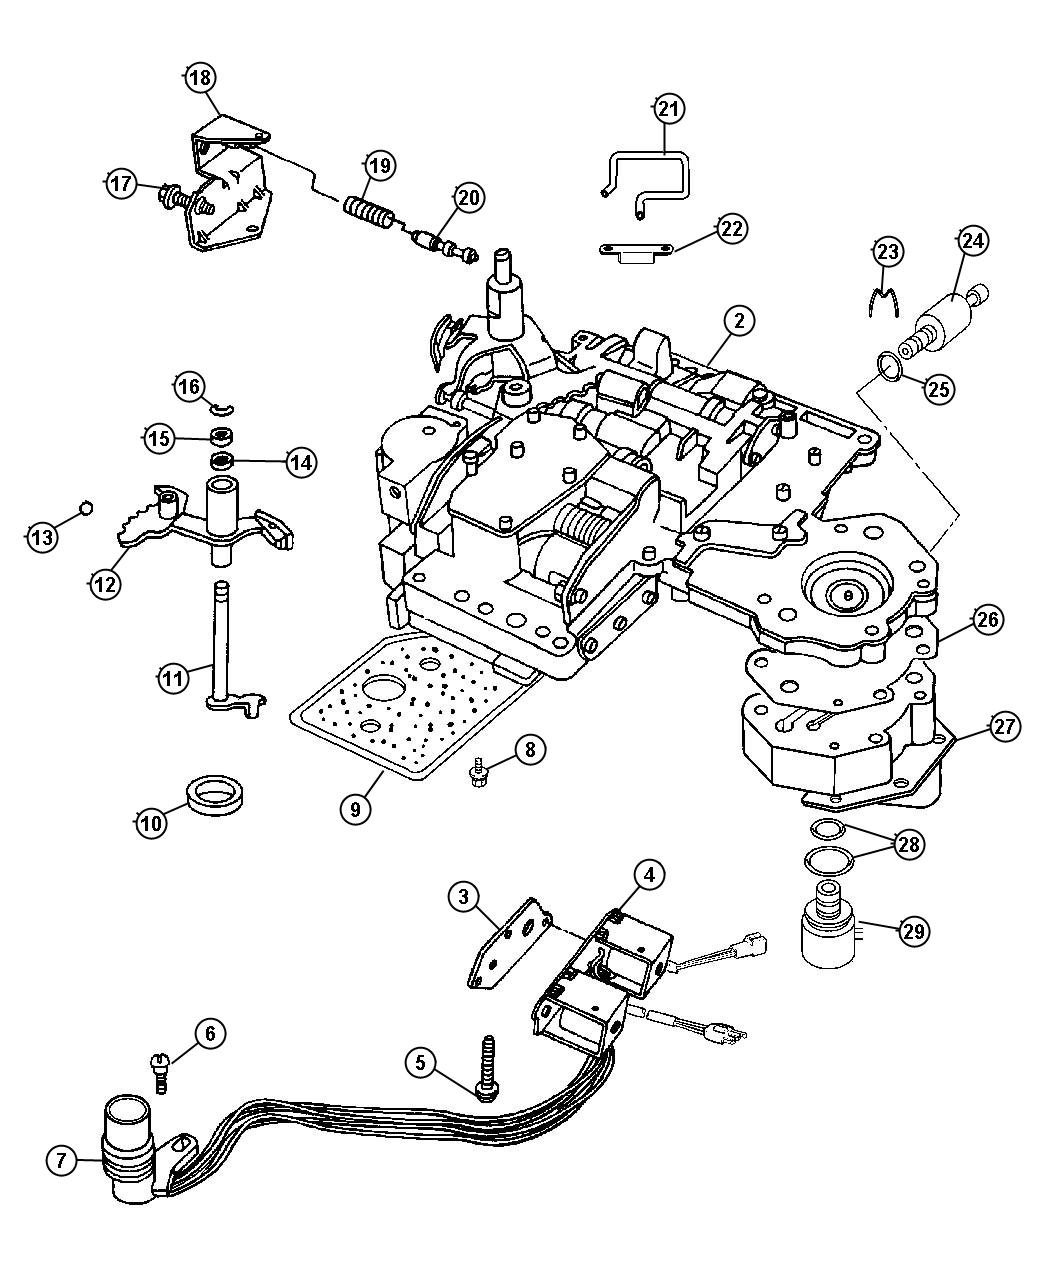 Jeep Grand Cherokee Solenoid. Transmission governor